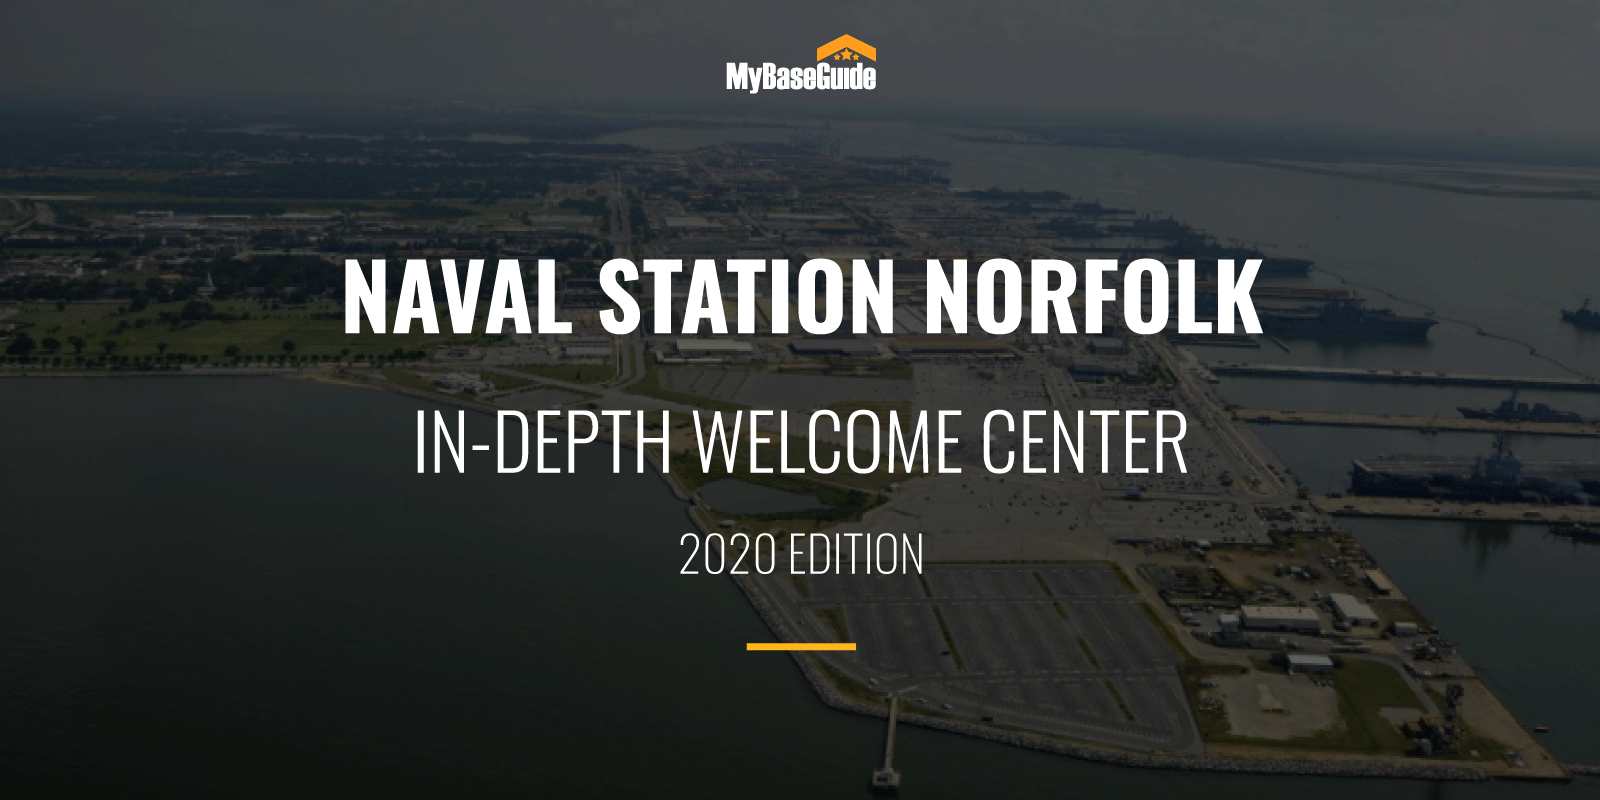 Naval Station Norfolk: In-Depth Welcome Center